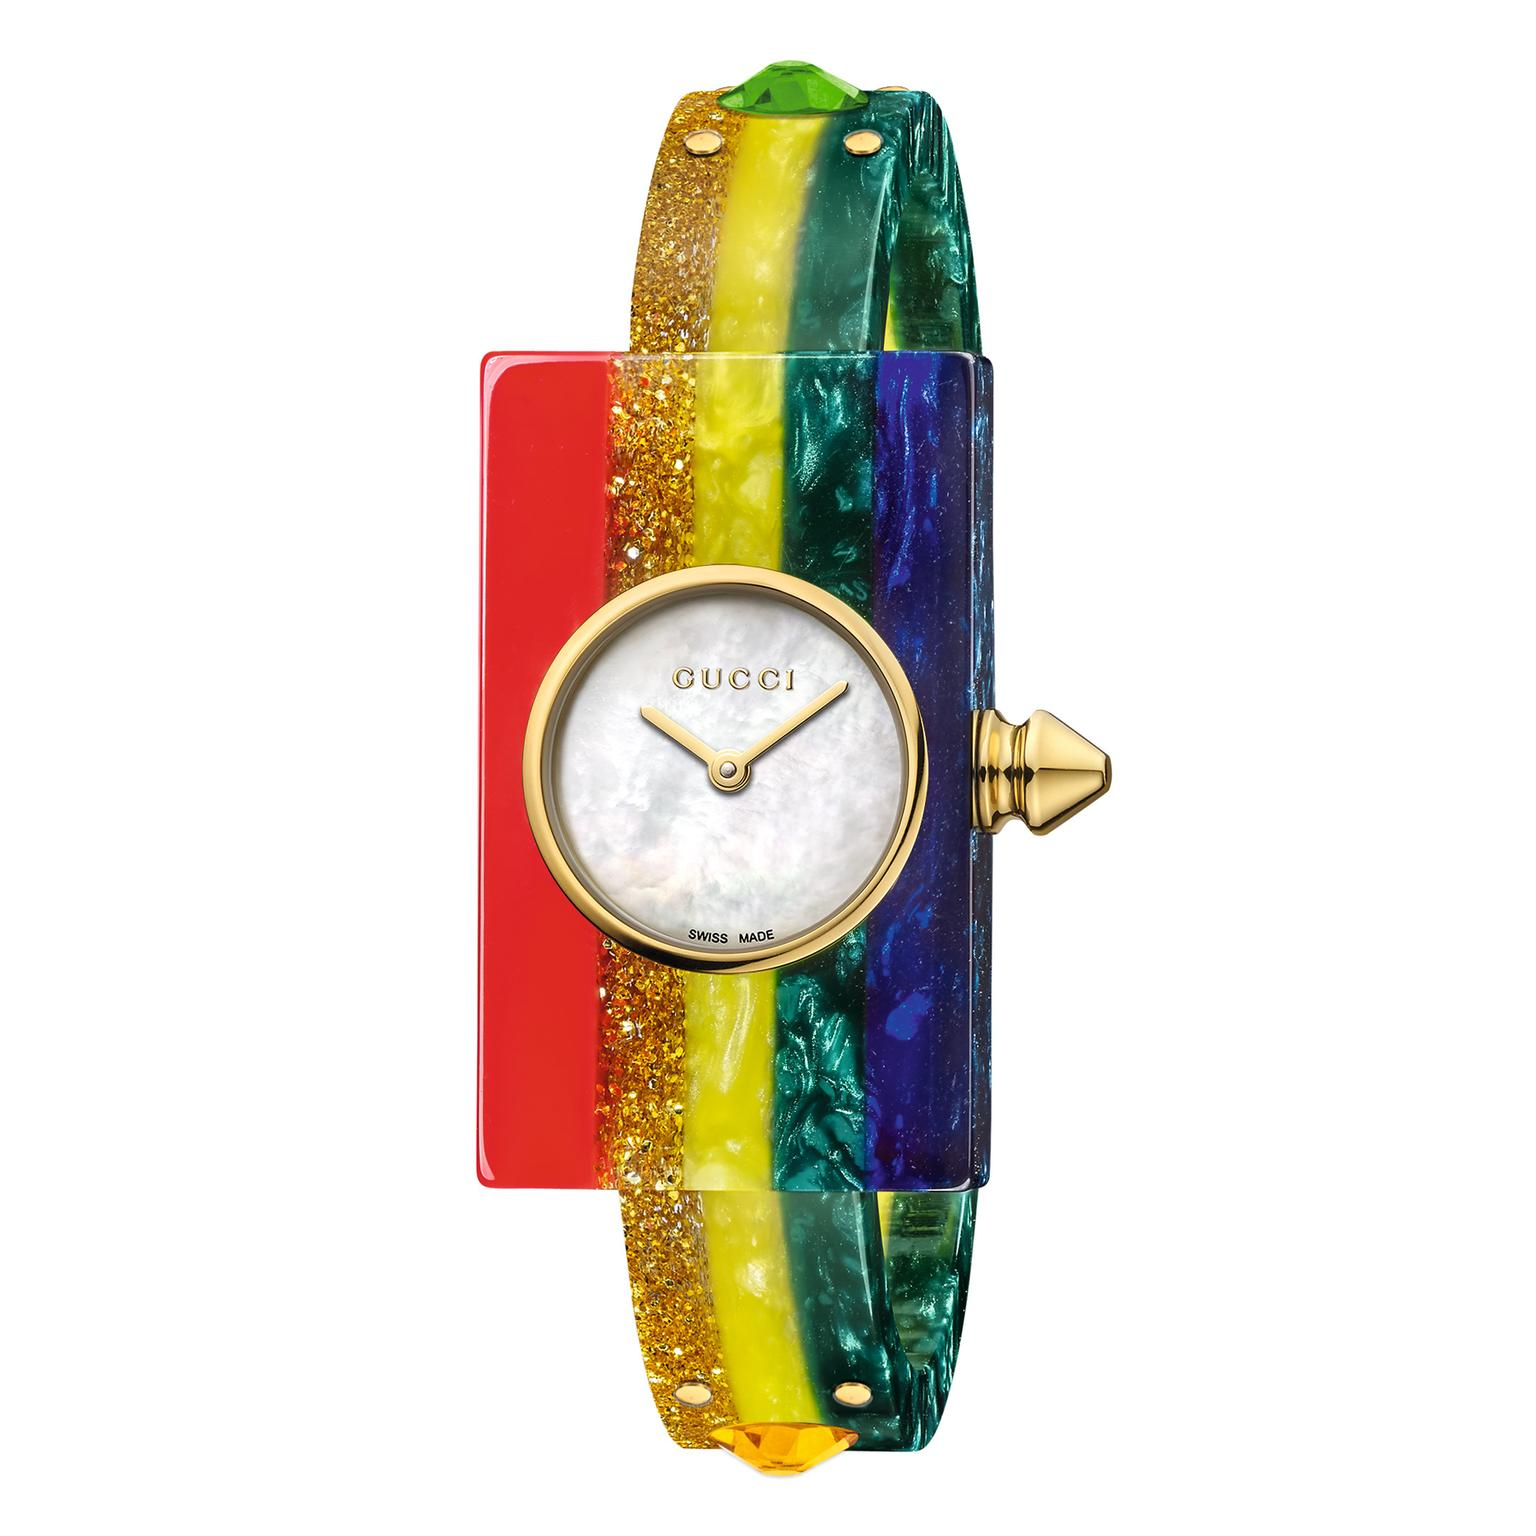 Gucci Rainbow Plexiglas watch